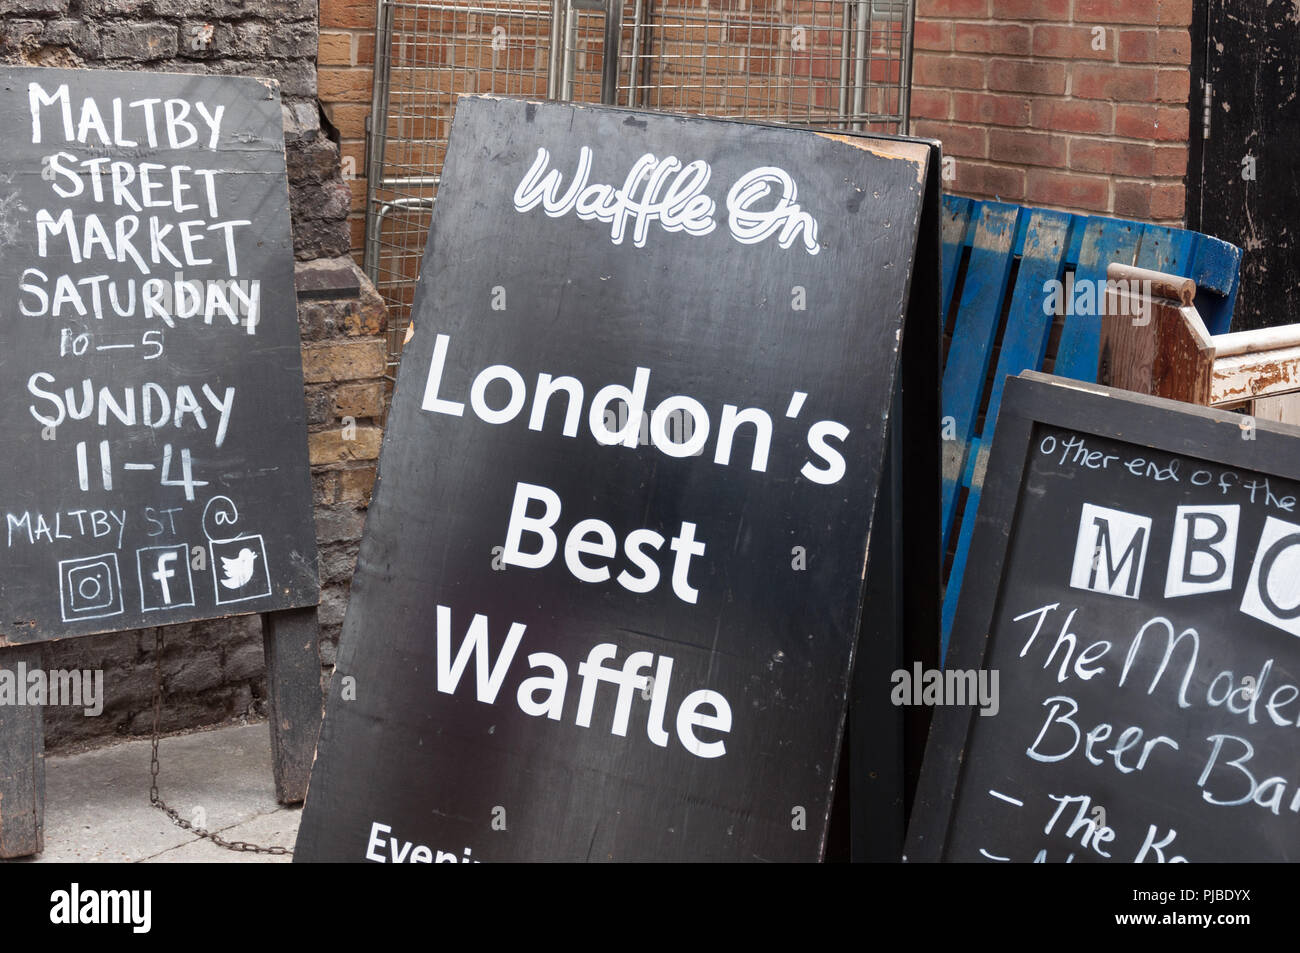 Advertisement blackboards at the entrance to Maltby Street Market, London, England, UK - Stock Image